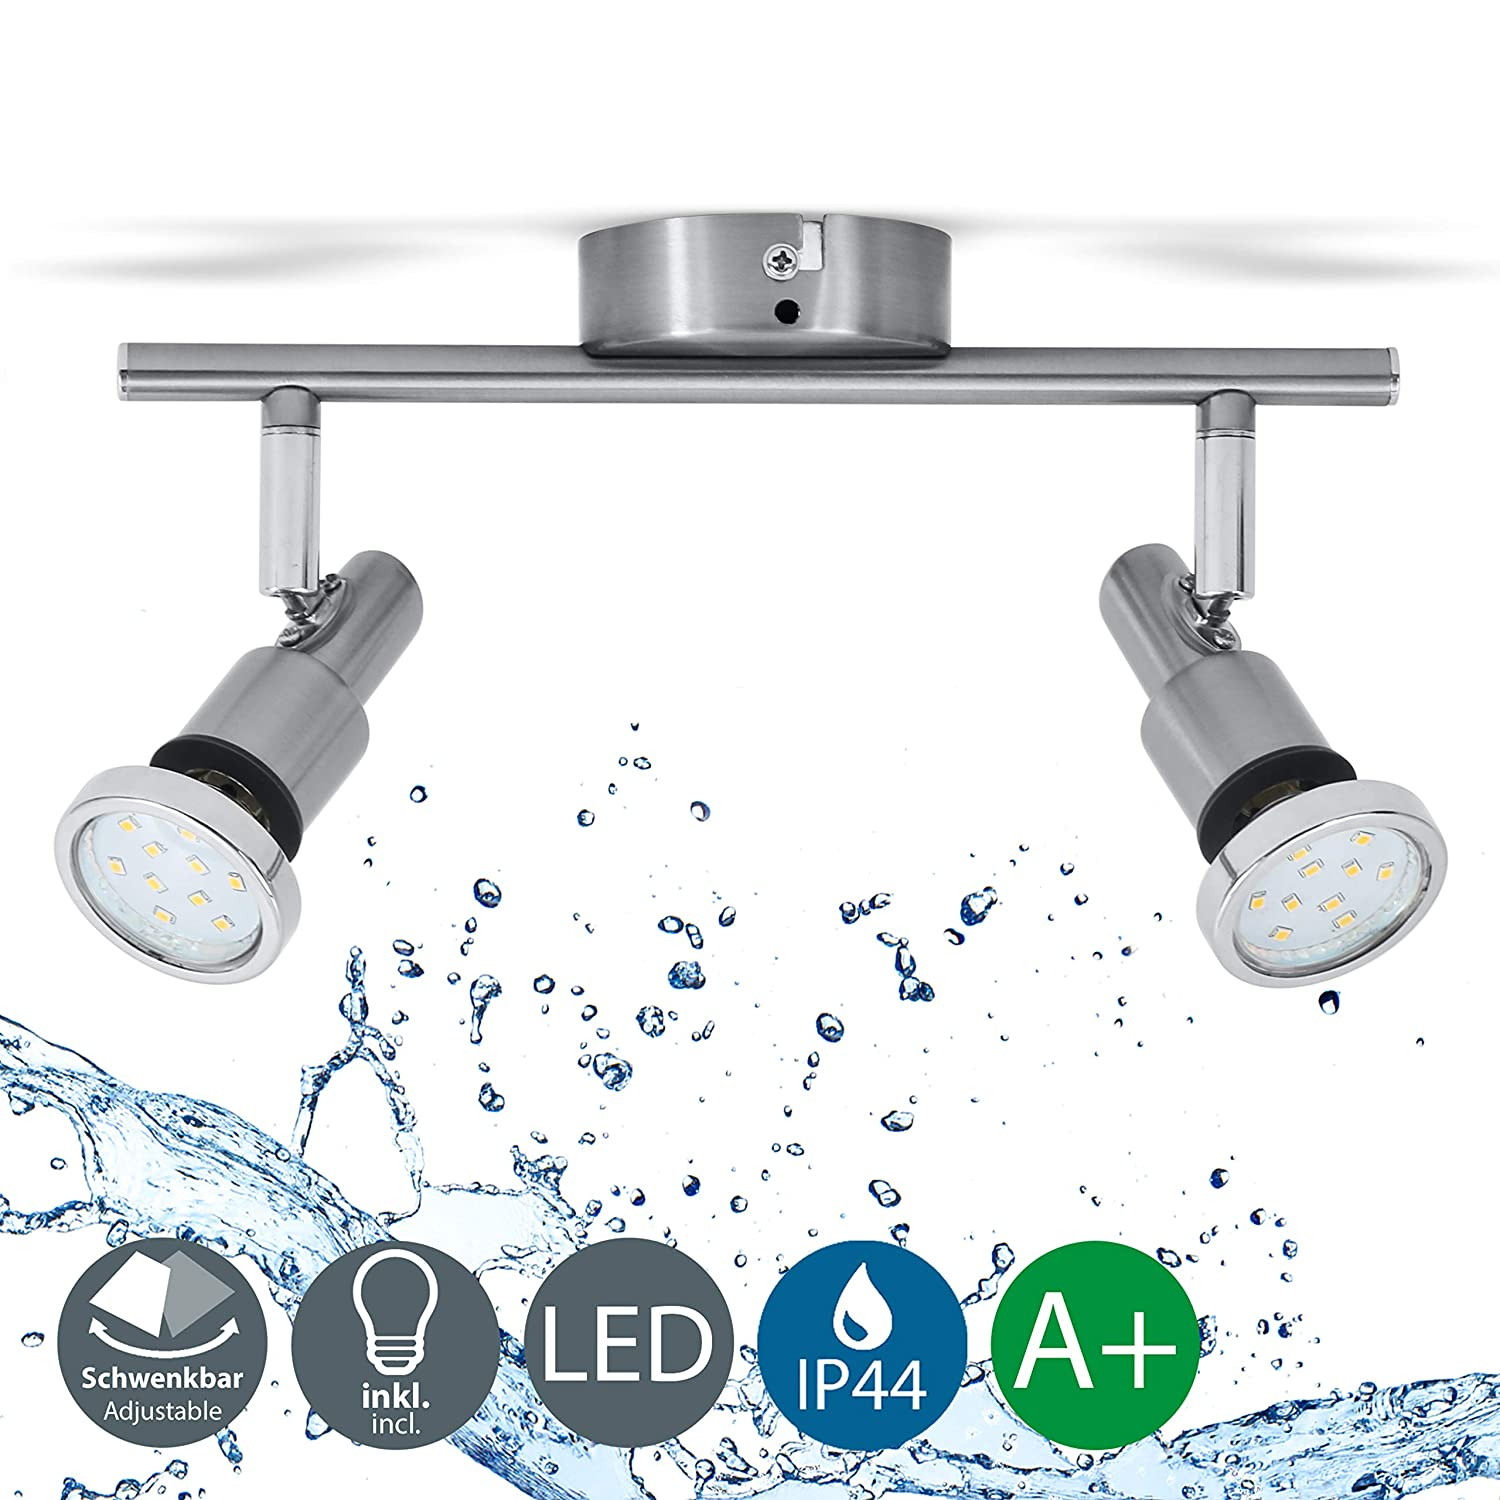 LED ceiling light rotatable I Bathroom lamp I spotlight for kitchen, living room & bedroom I ceiling lamp I spot I warm white I metal I matte titanium design I 2 x 3 W illuminant I 230 V I GU10 I IP44